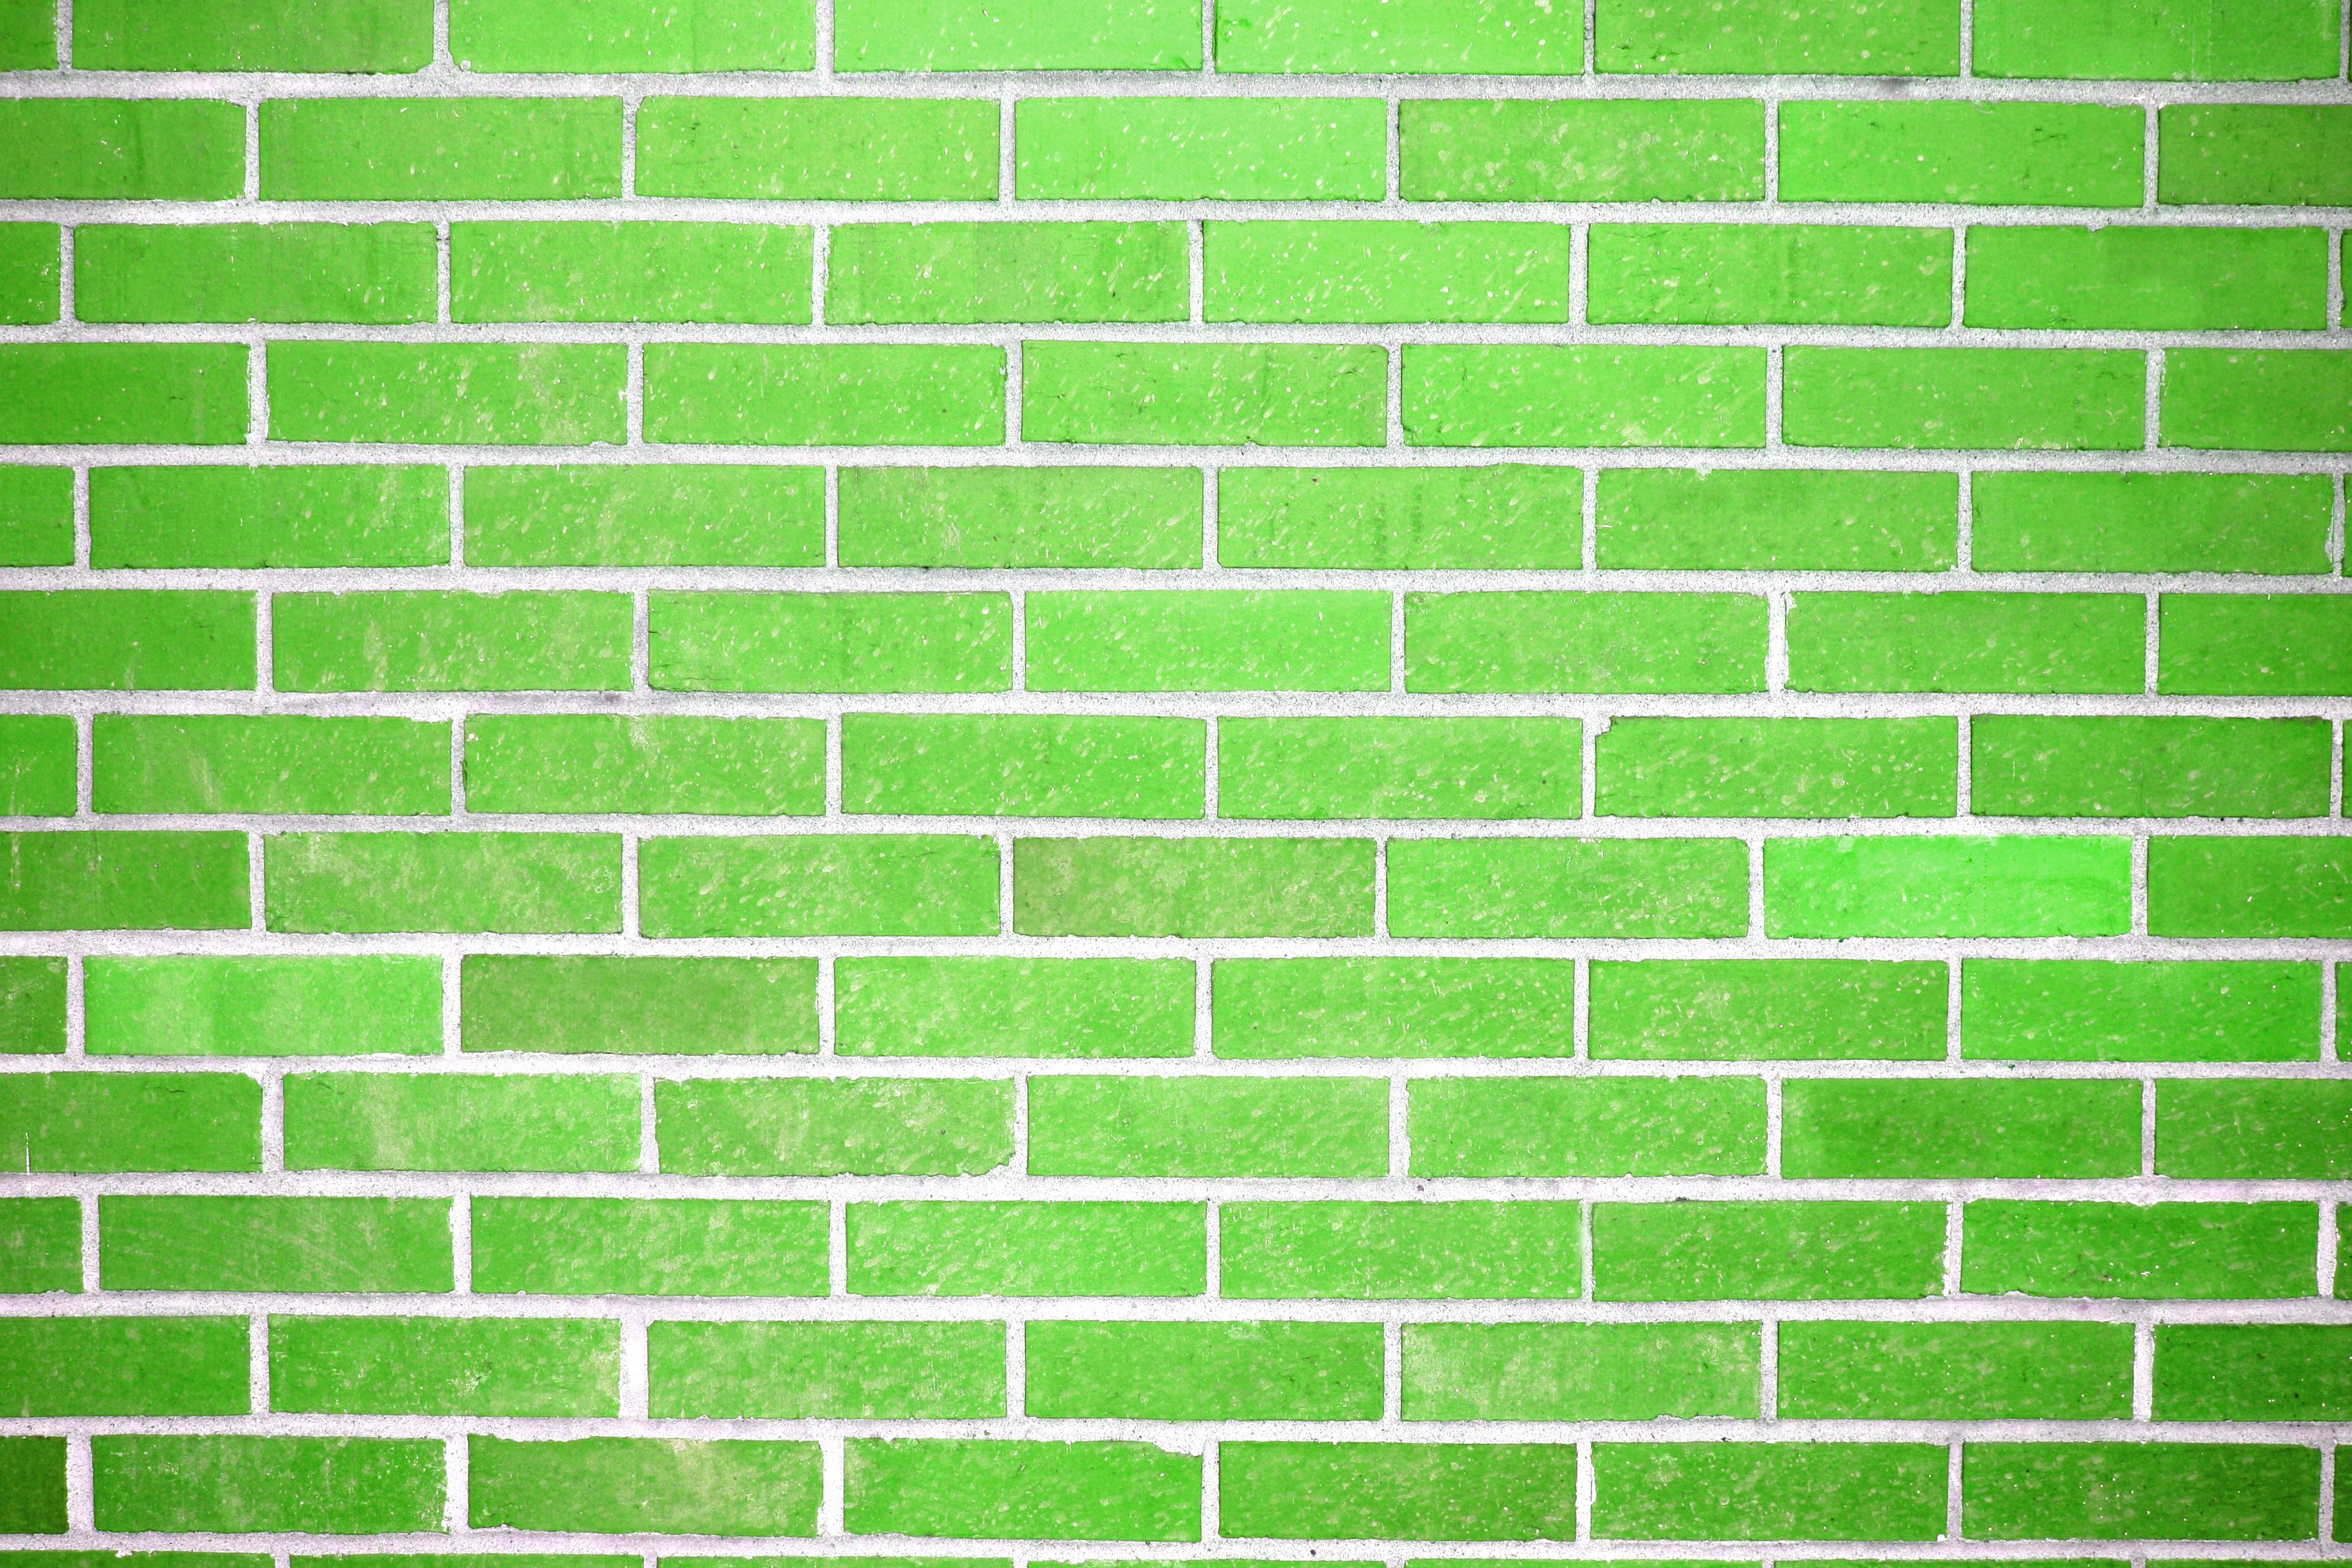 Lime Green Brick Wall Texture Picture.